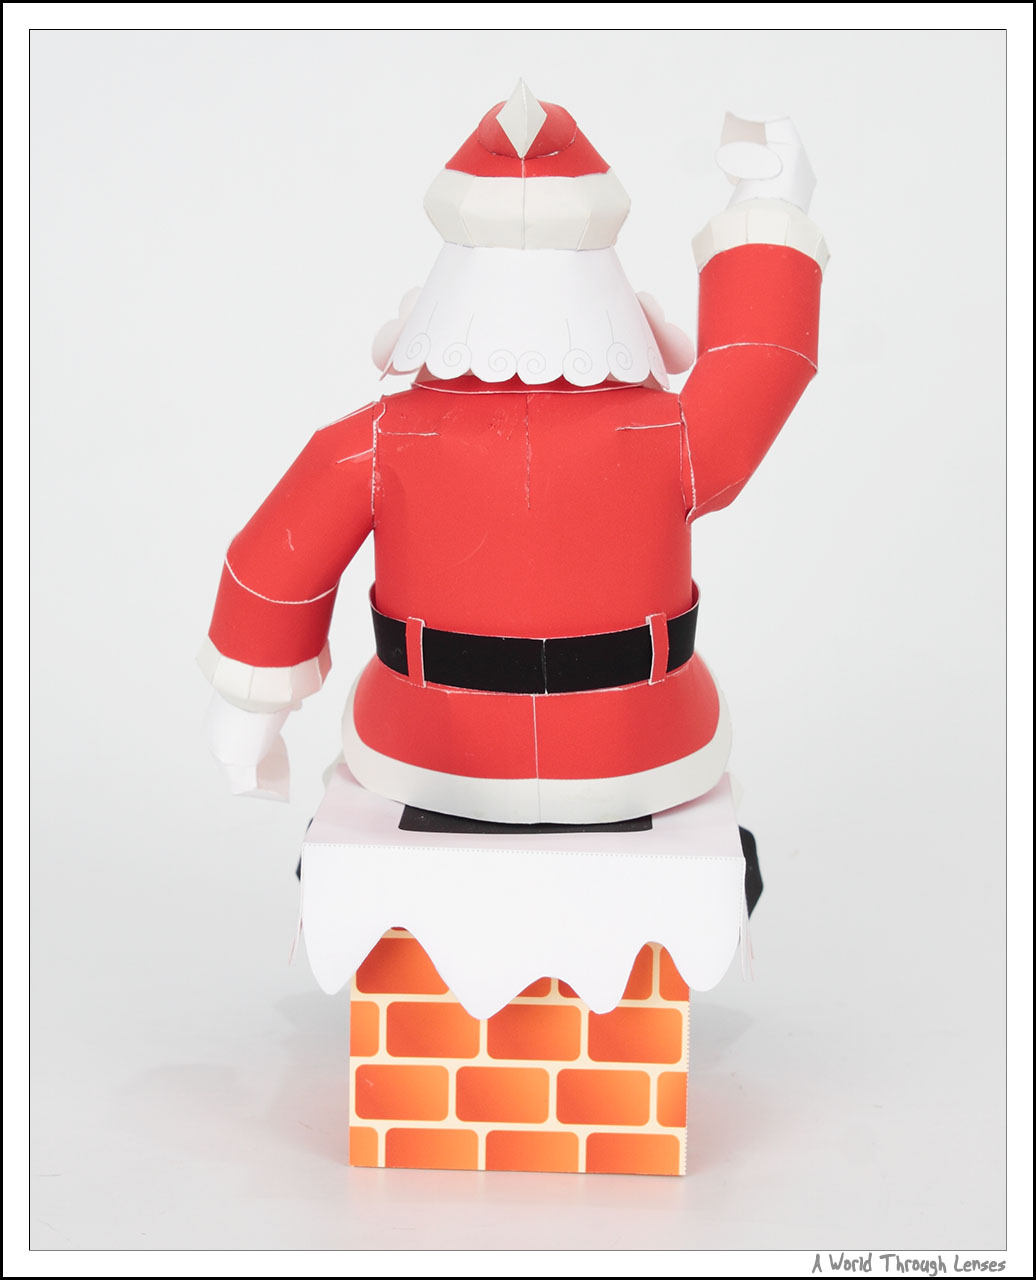 So here they are. First is the Santa Claus sitting on a chimney.